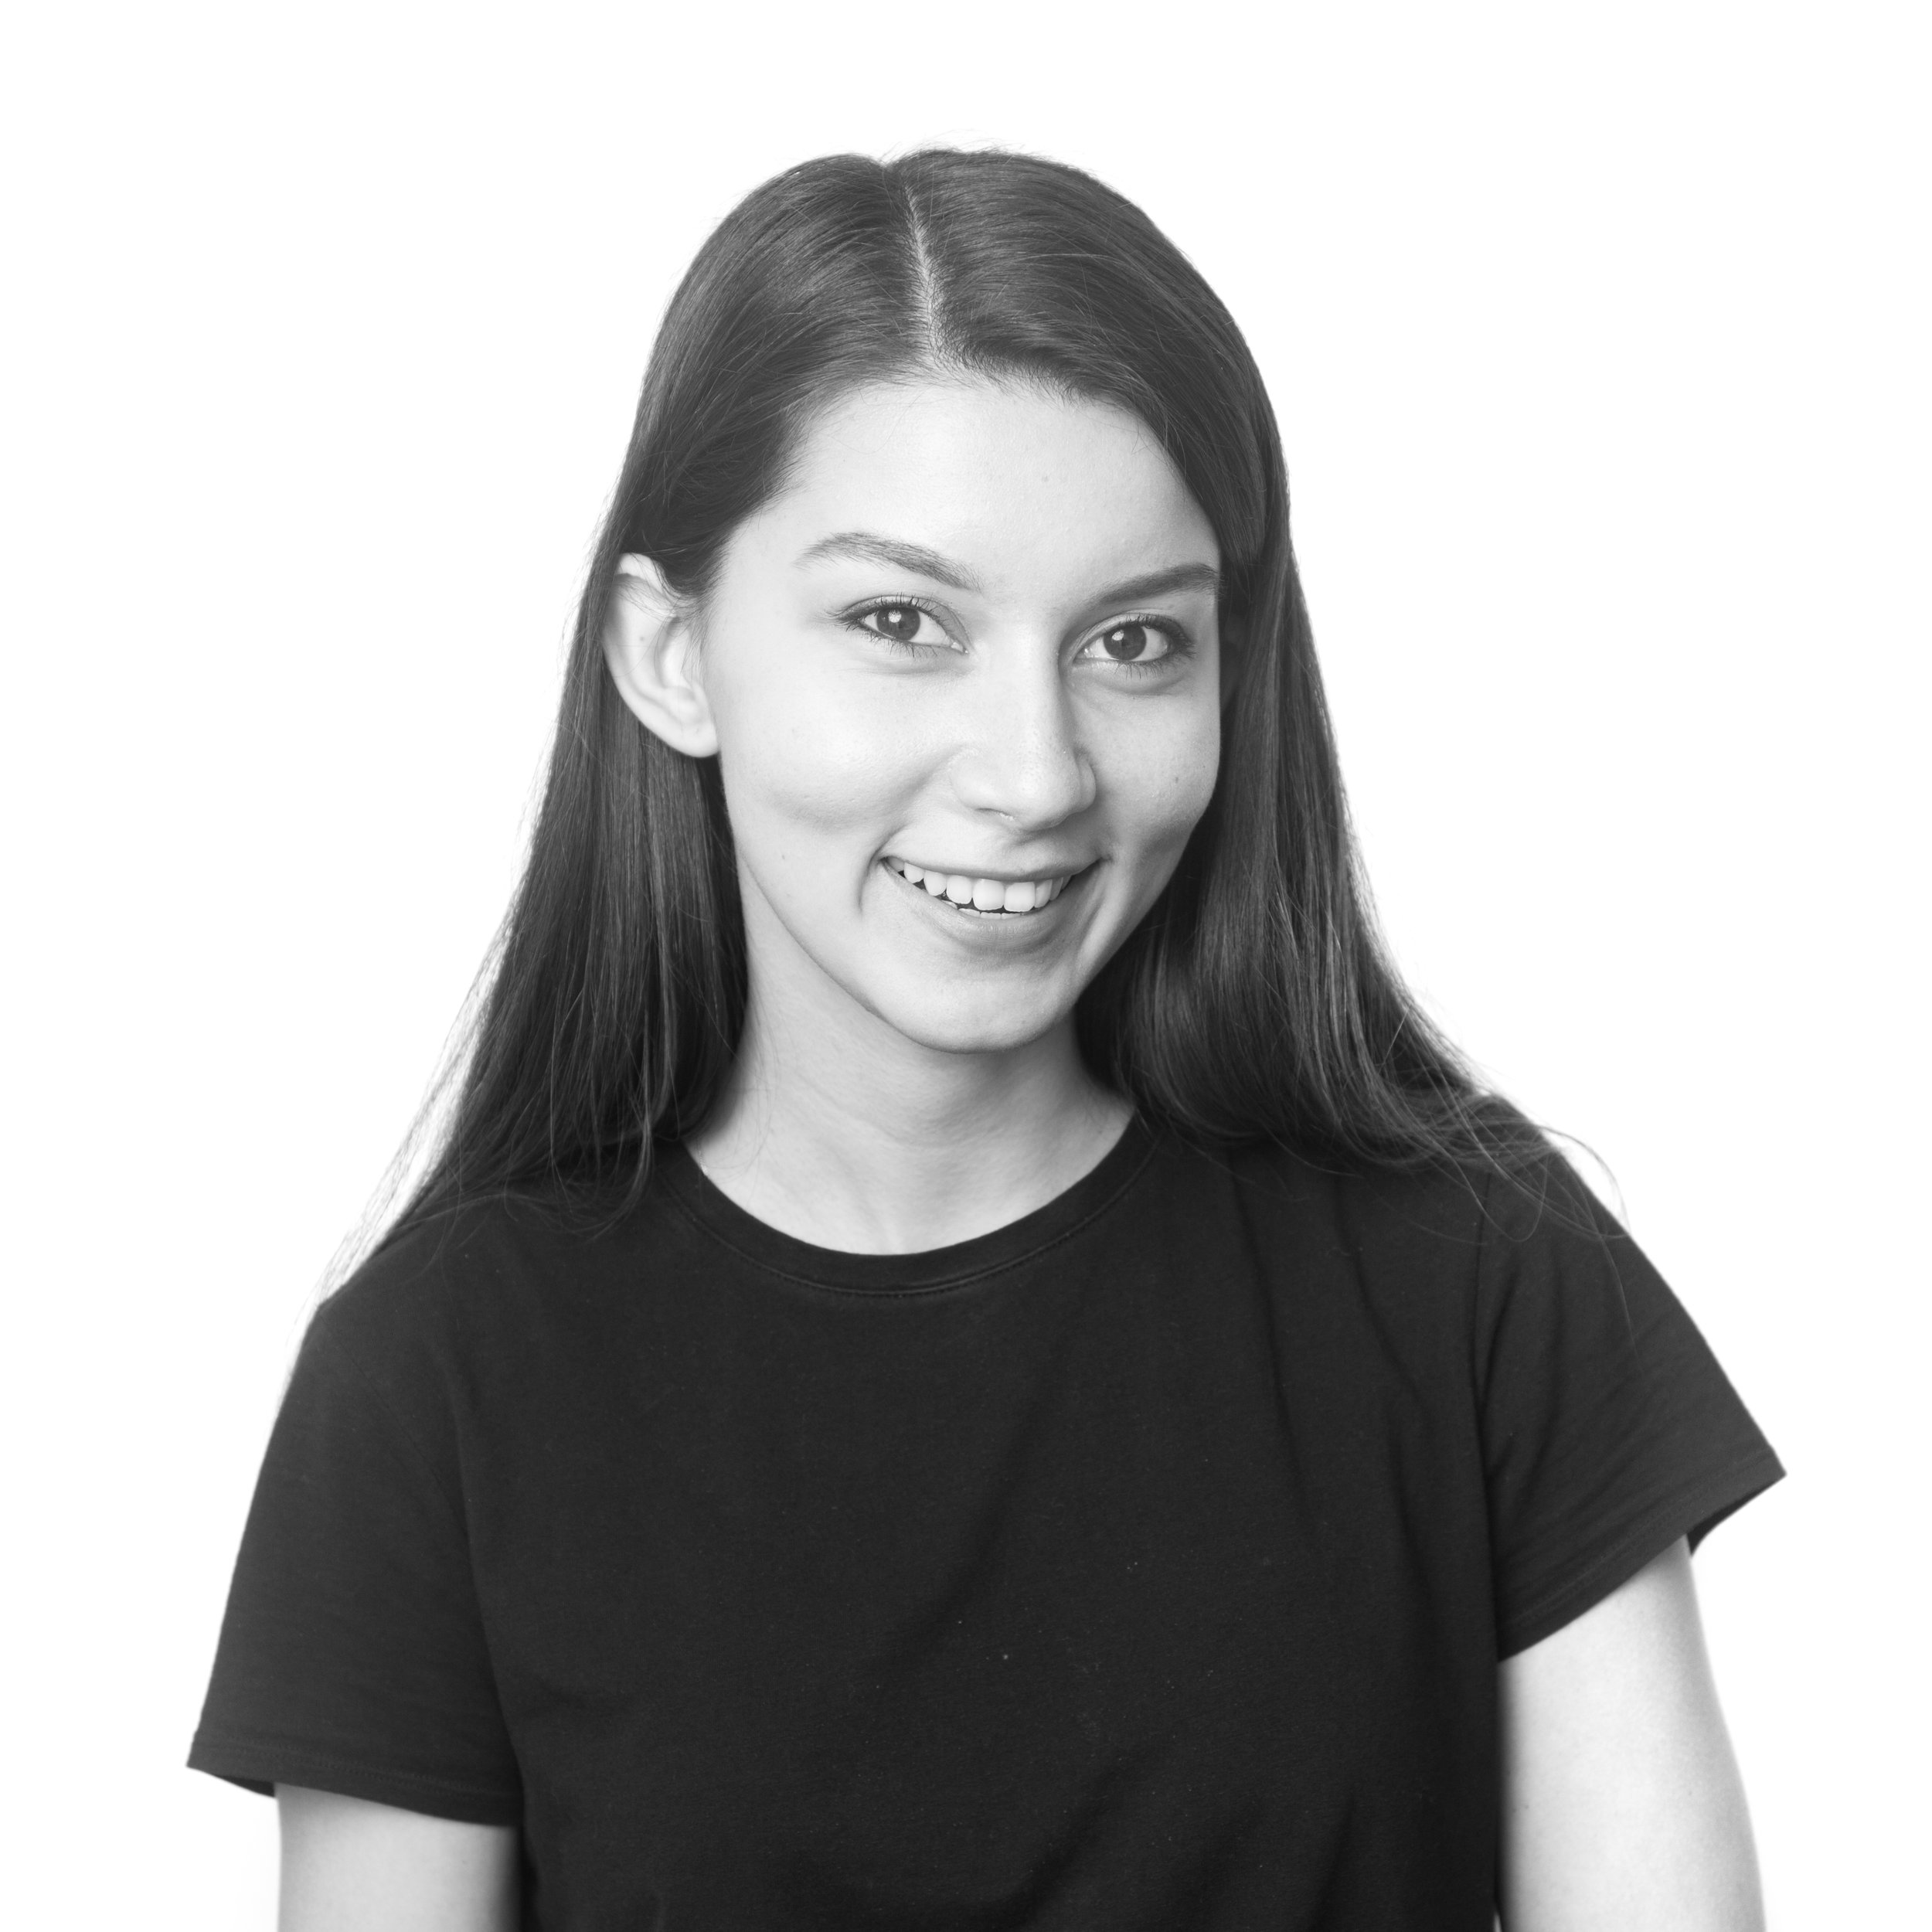 Leidina Dervishi  Business Operations  Leidina has experience in business development, research and operations across political, clinical, and startup environments. She is a graduate of Colgate University with a degree in Biochemistry.   LinkedIn